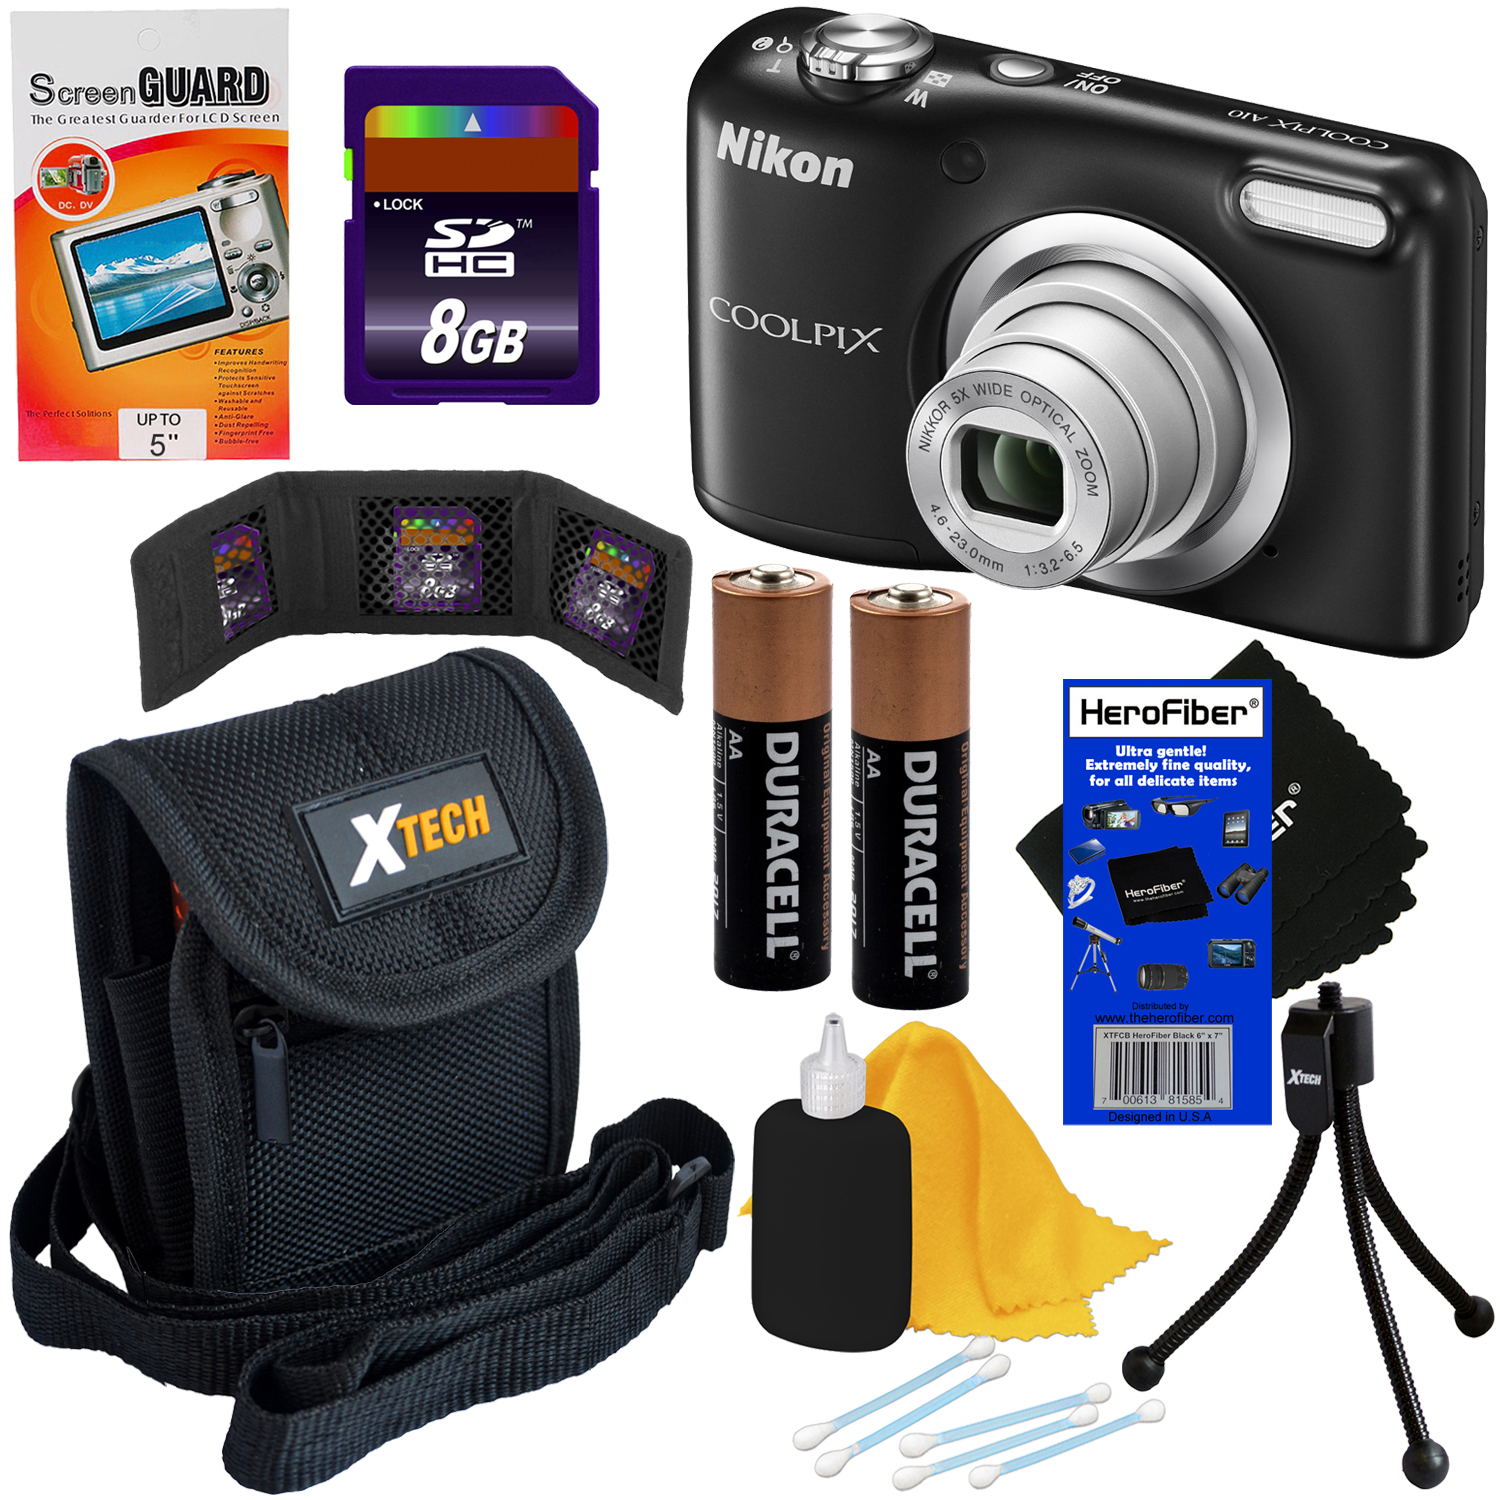 Nikon COOLPIX A10 16.1 MP Digital Camera with 5x Zoom NIKKOR Lens & 720p HD Video, (Black) + 7pc Bundle 8GB Accessory Kit w/ HeroFiber® Ultra Gentle Cleaning Cloth